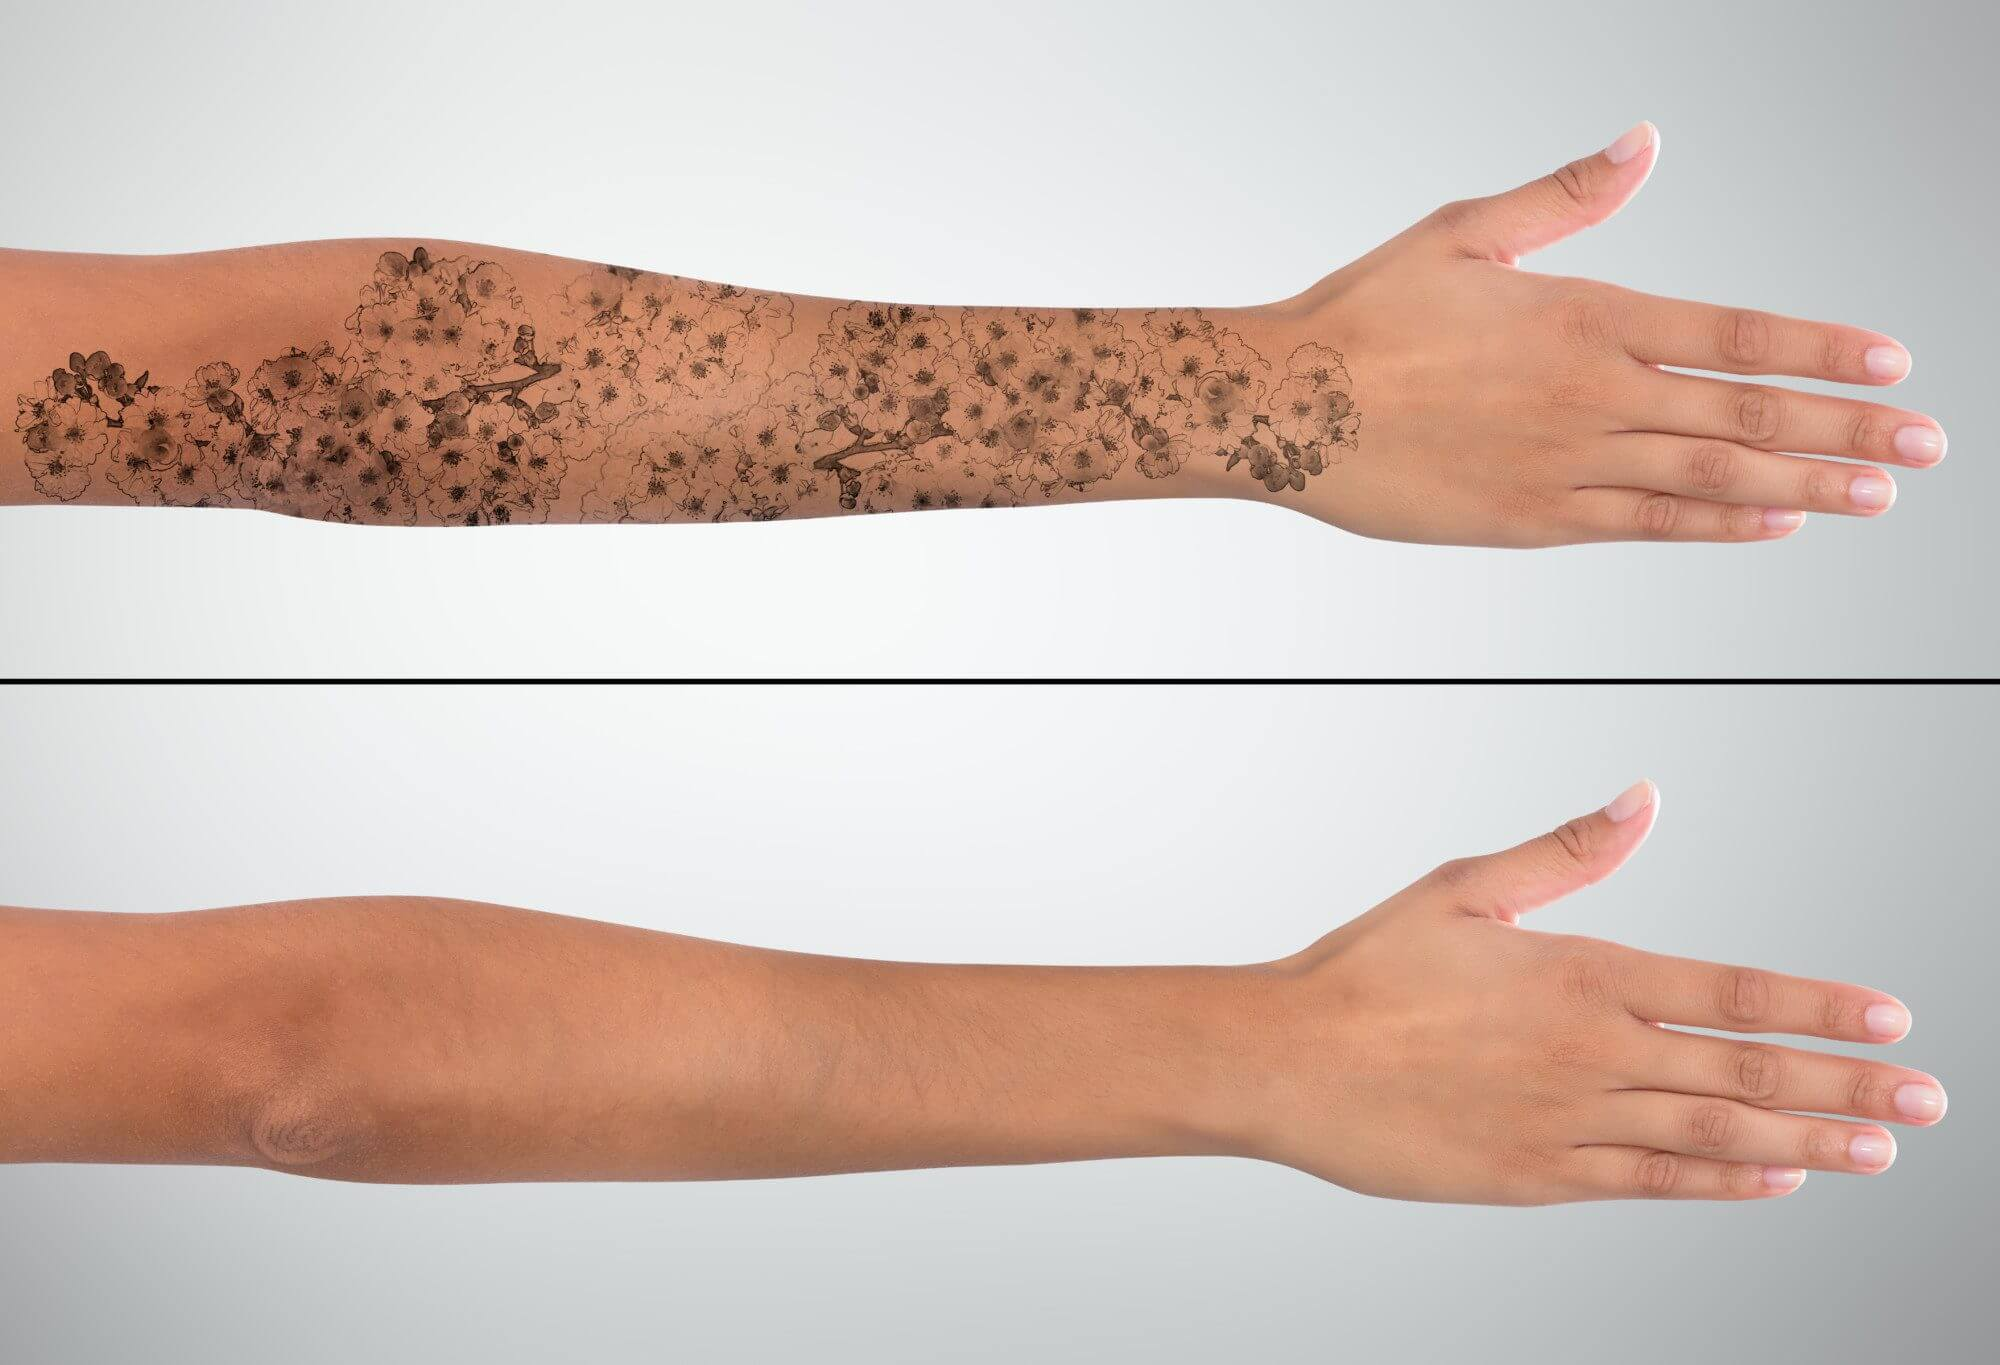 The PicoWay® Laser—The Next Level of Tattoo Removal